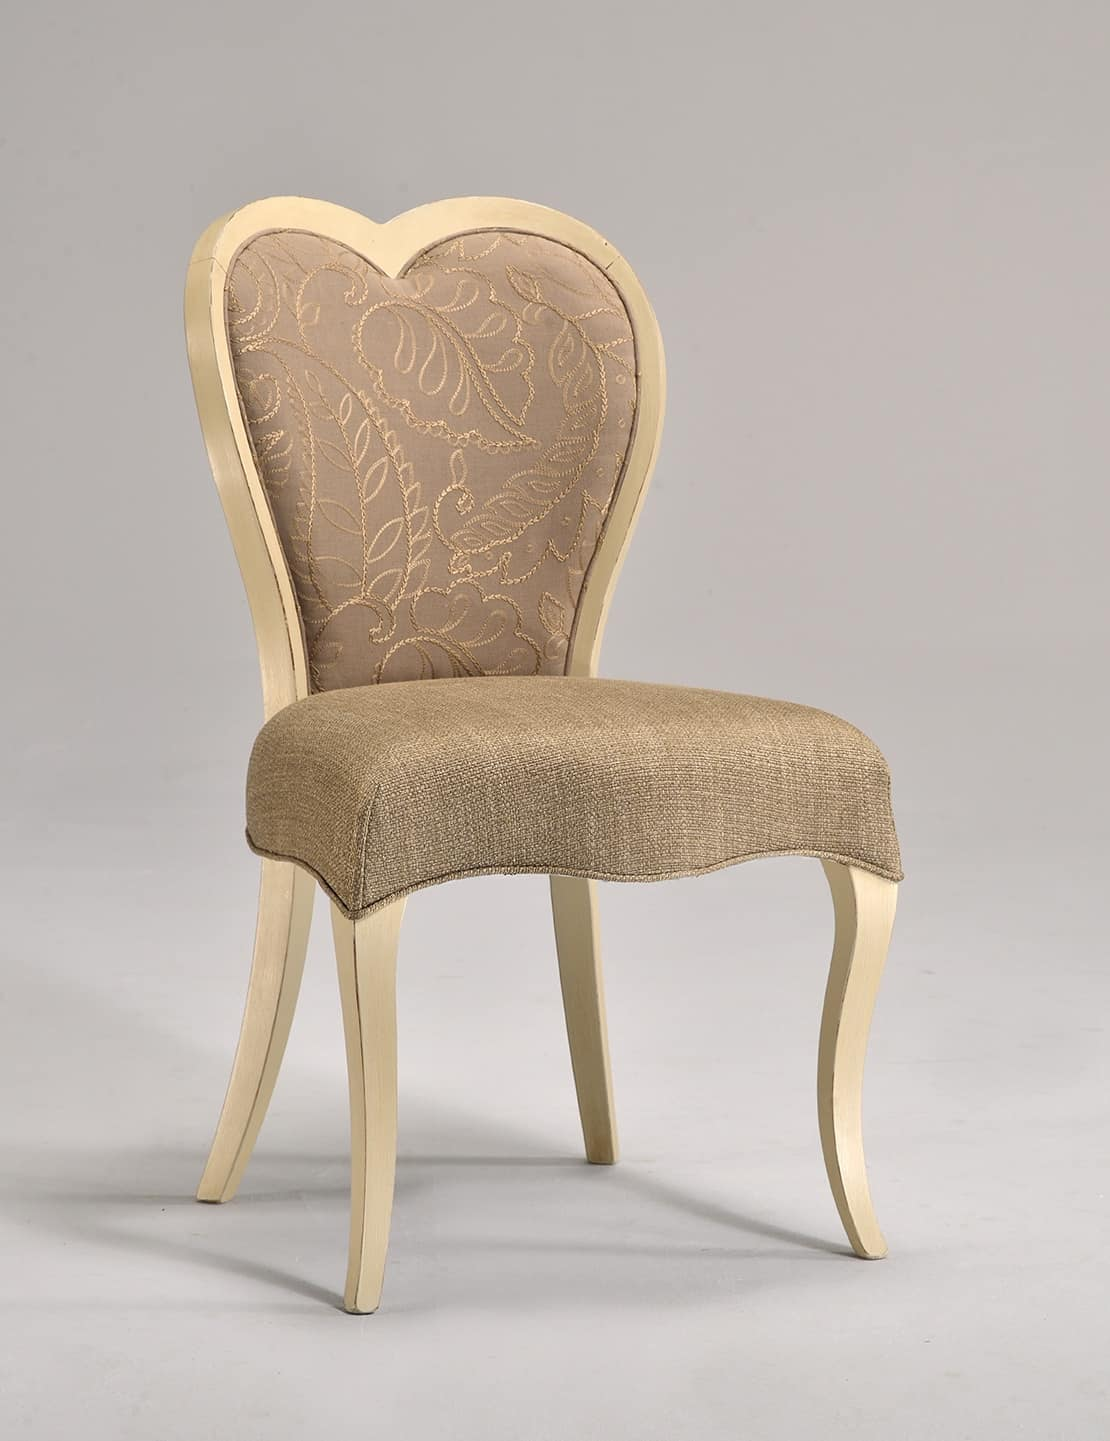 love making chair images large leather with ottoman classic beech heart shaped backrest idfdesign